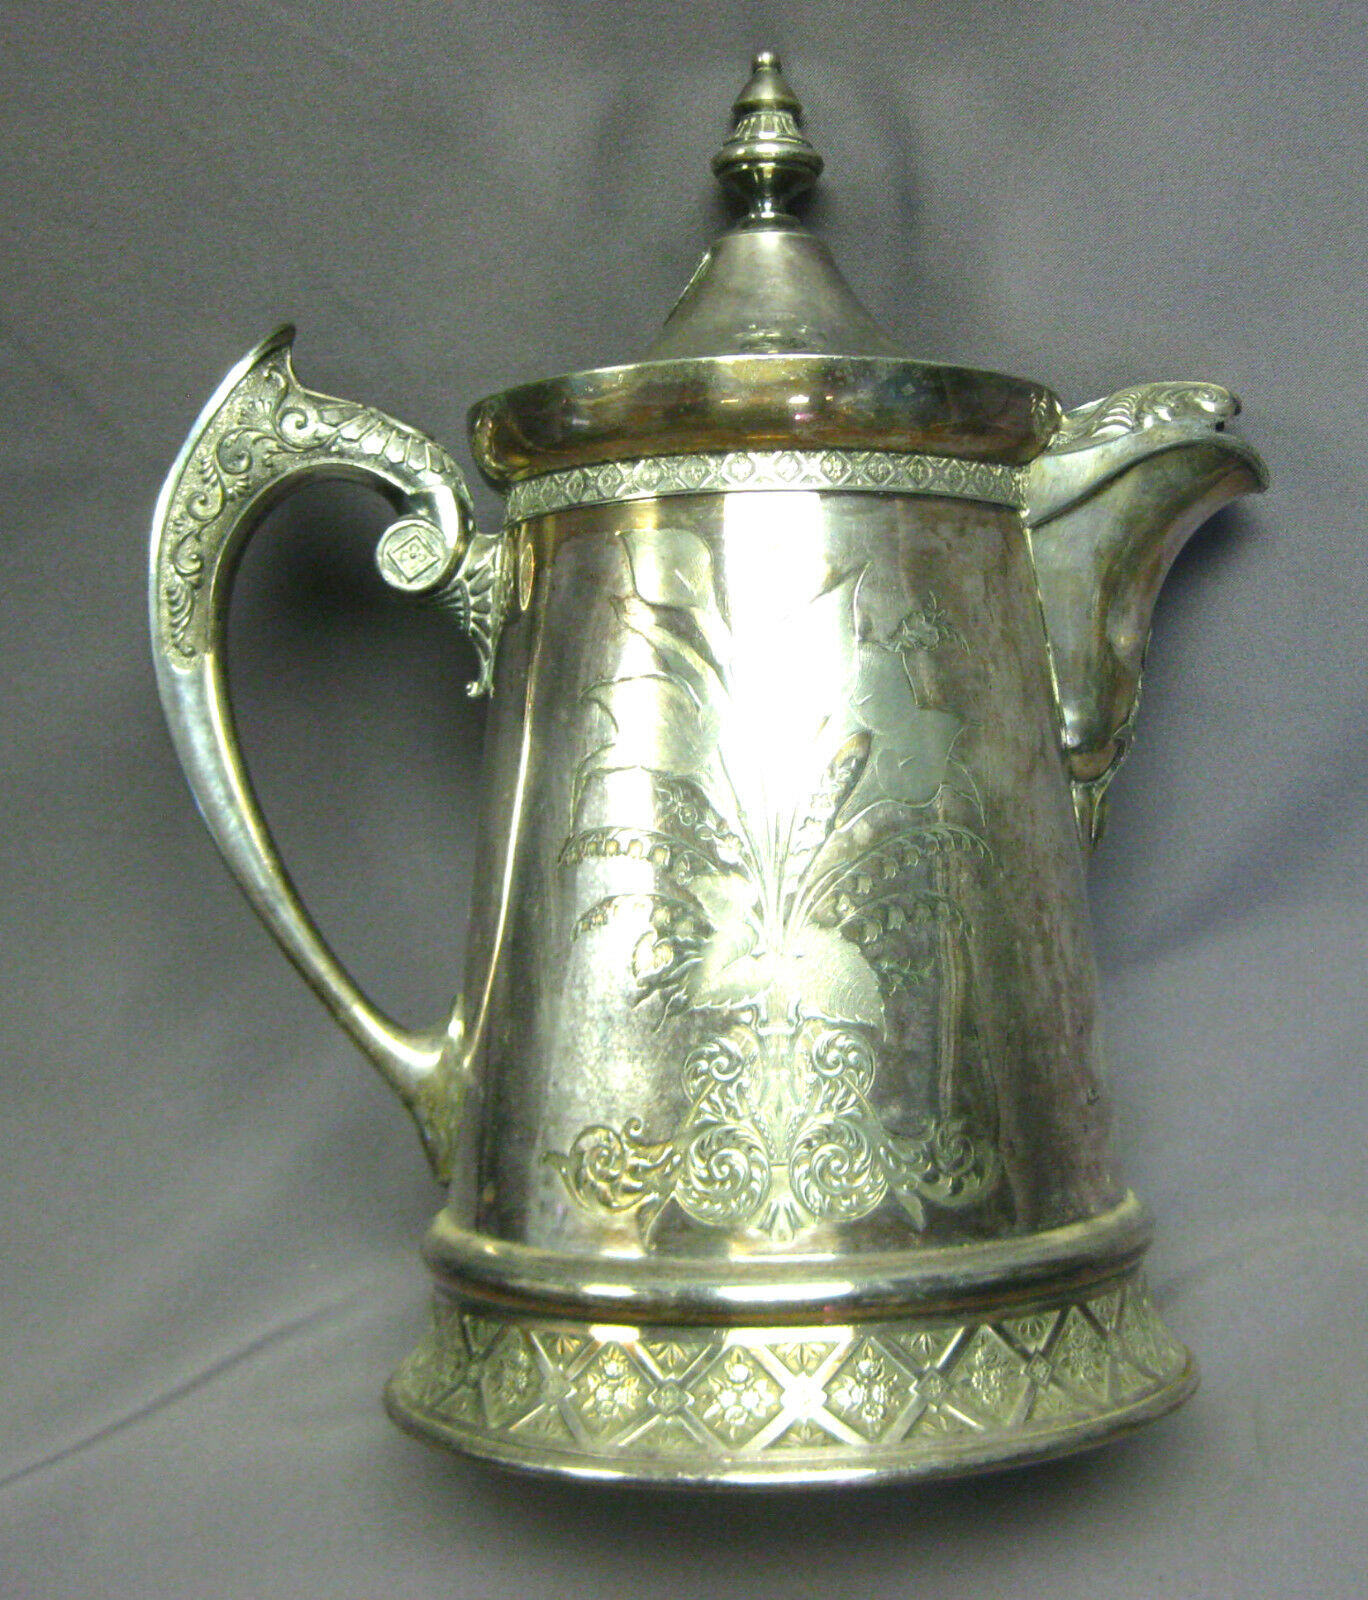 Water Pitcher Ceramic Antique Wilcox Quadruple Plate Silver Water Pitcher